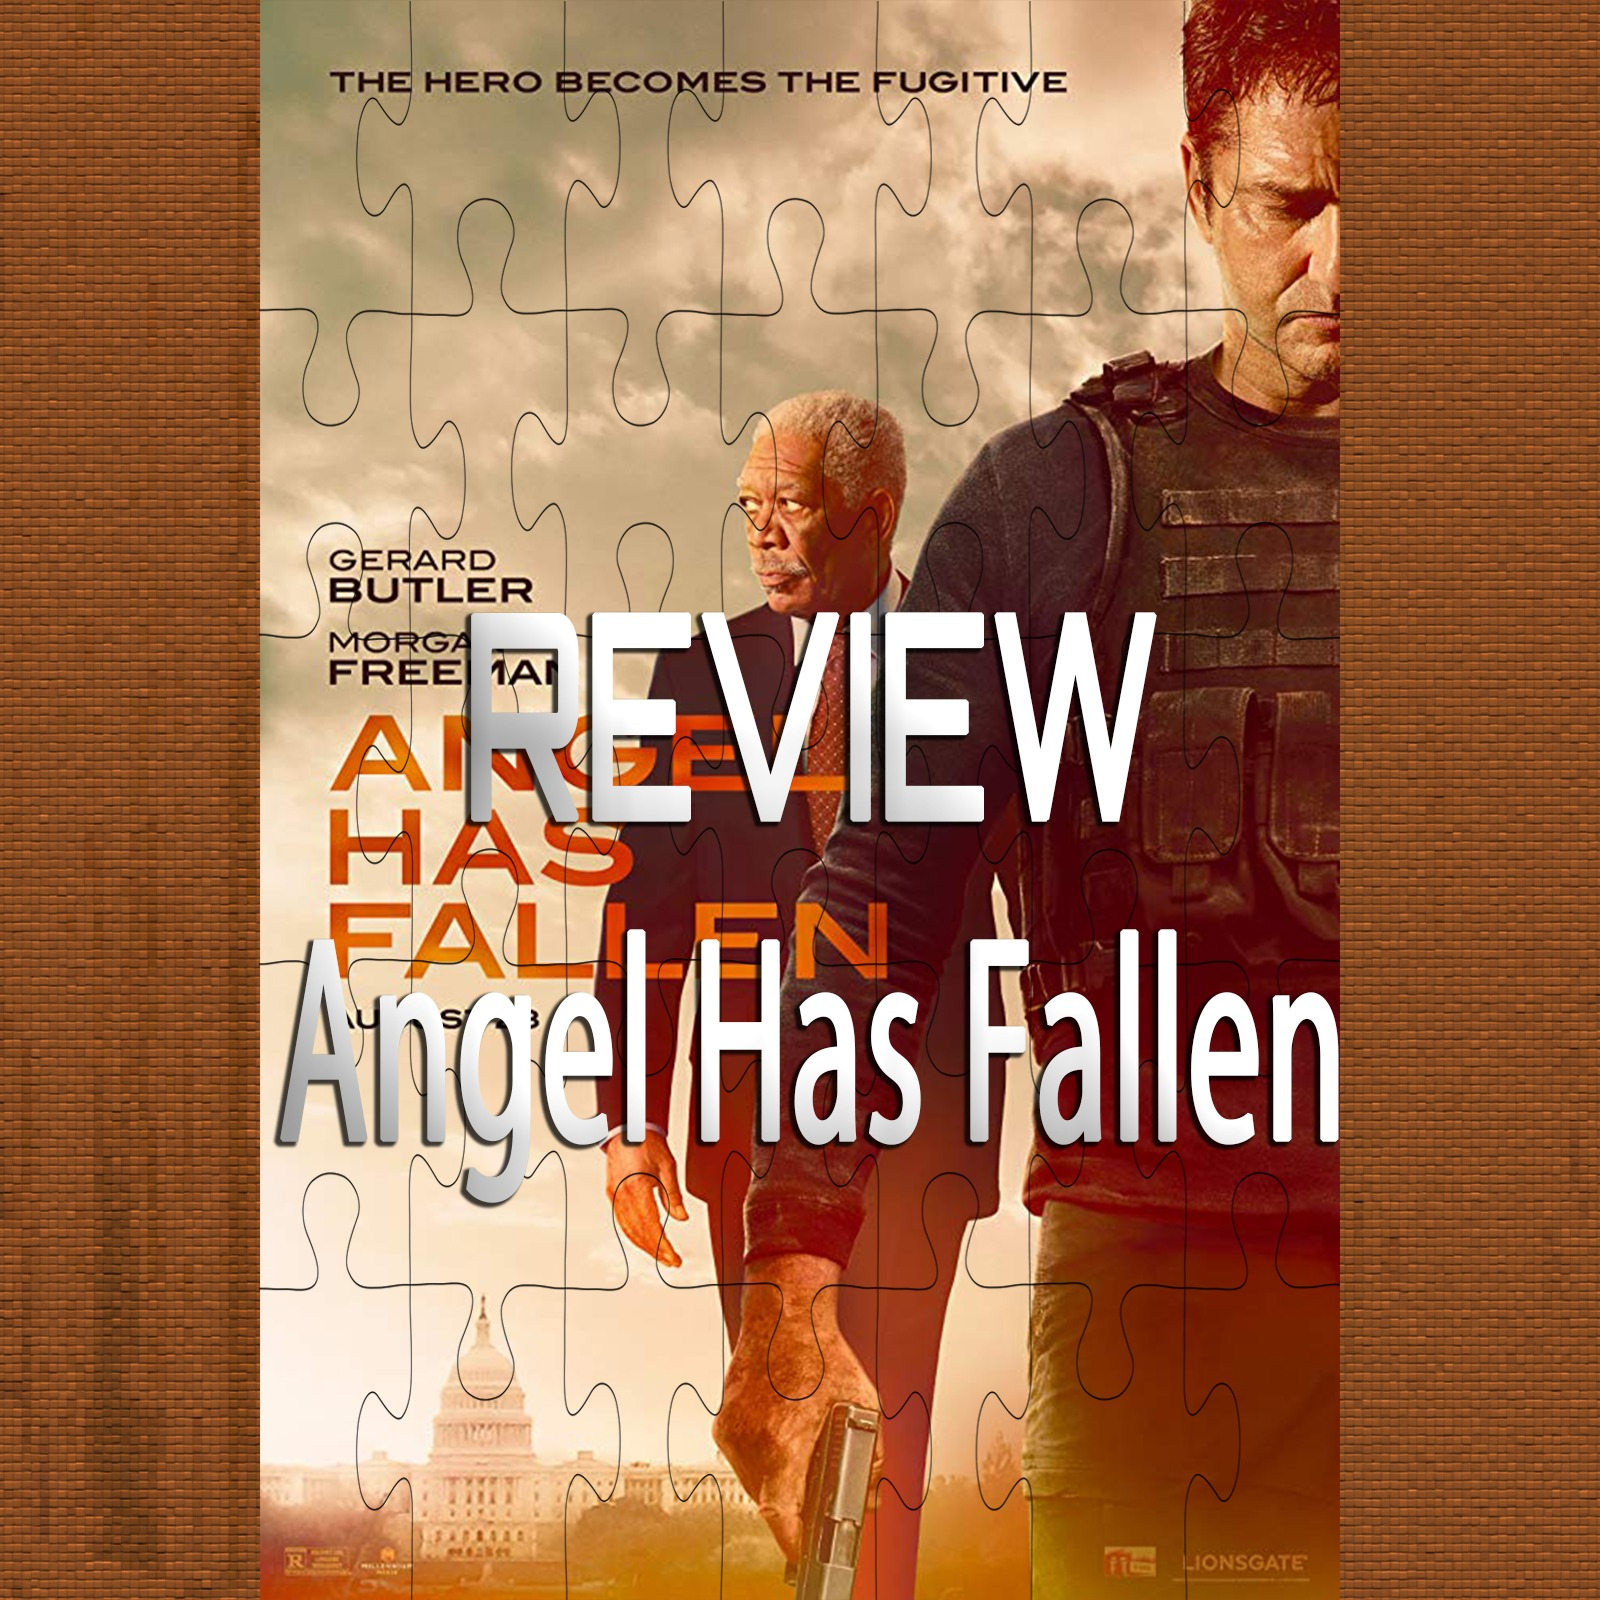 Angel Has Fallen (Review)